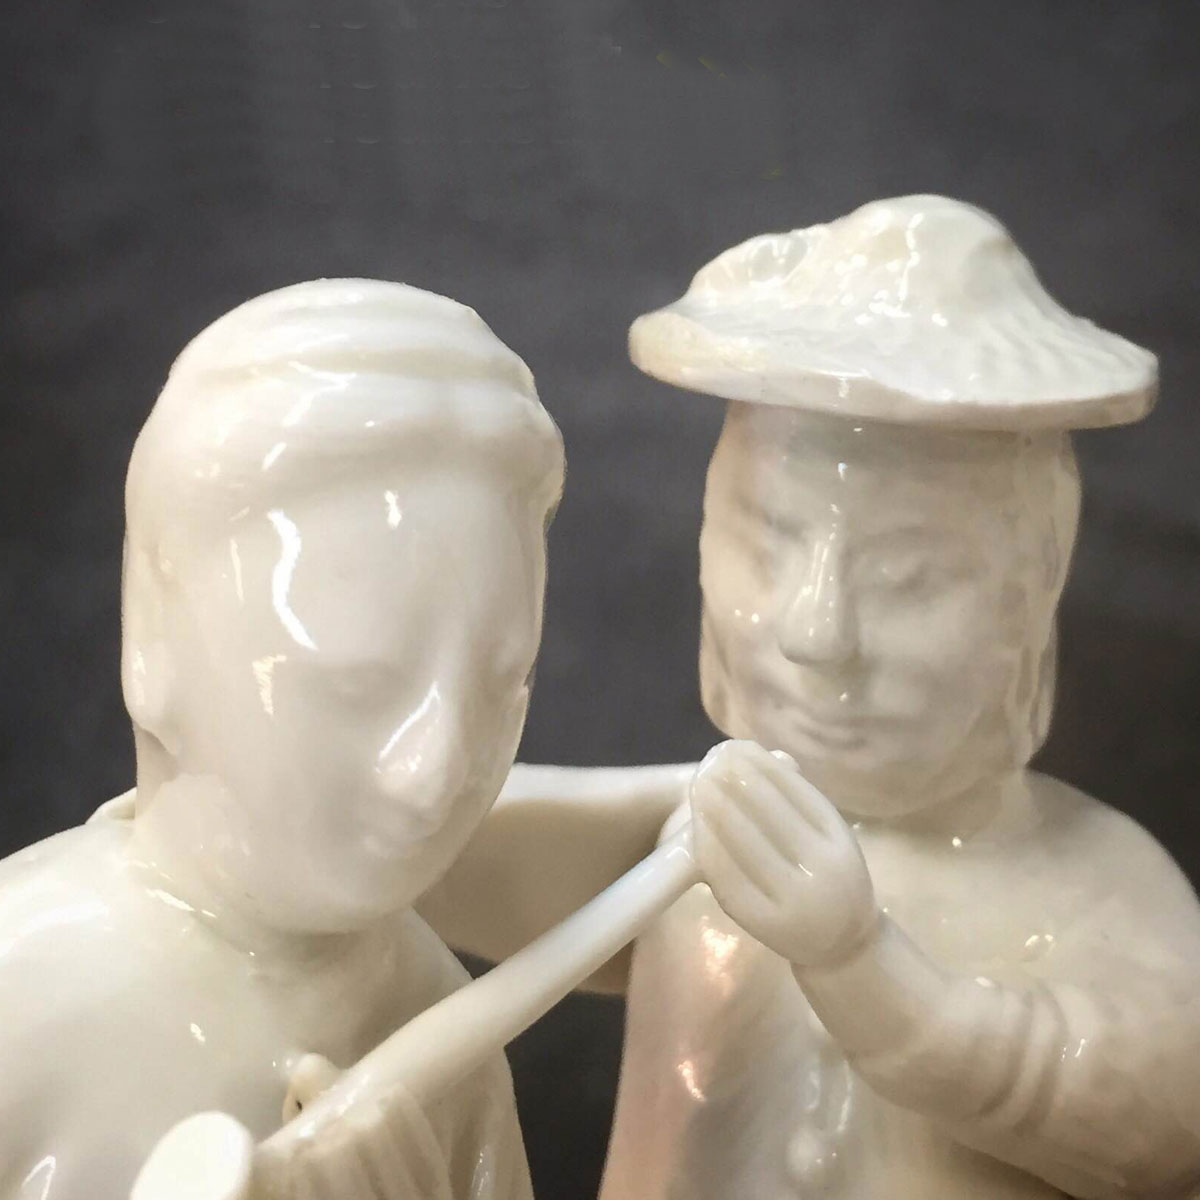 Two white ceramic figures, one with a pipe